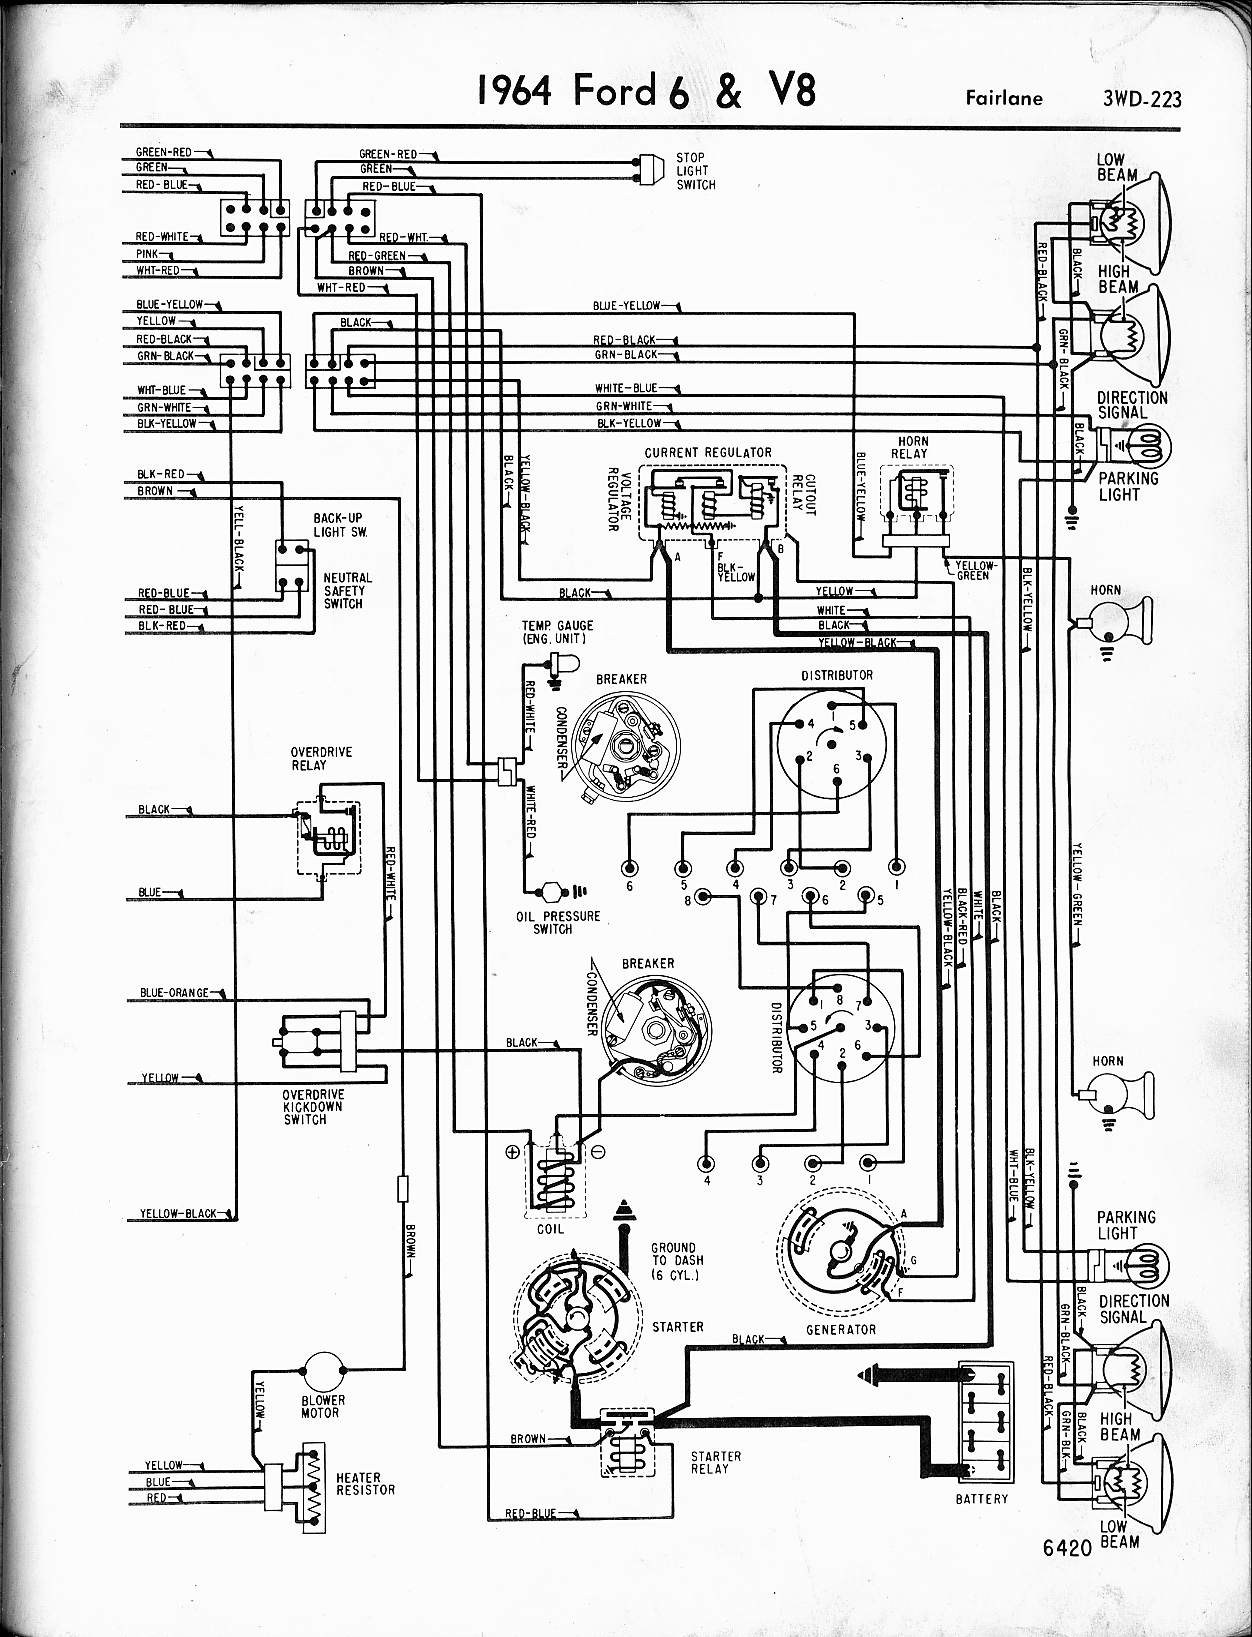 1969 Ford Galaxie Wiring Diagram Wiring Diagrams Collection Collection Chatteriedelavalleedufelin Fr